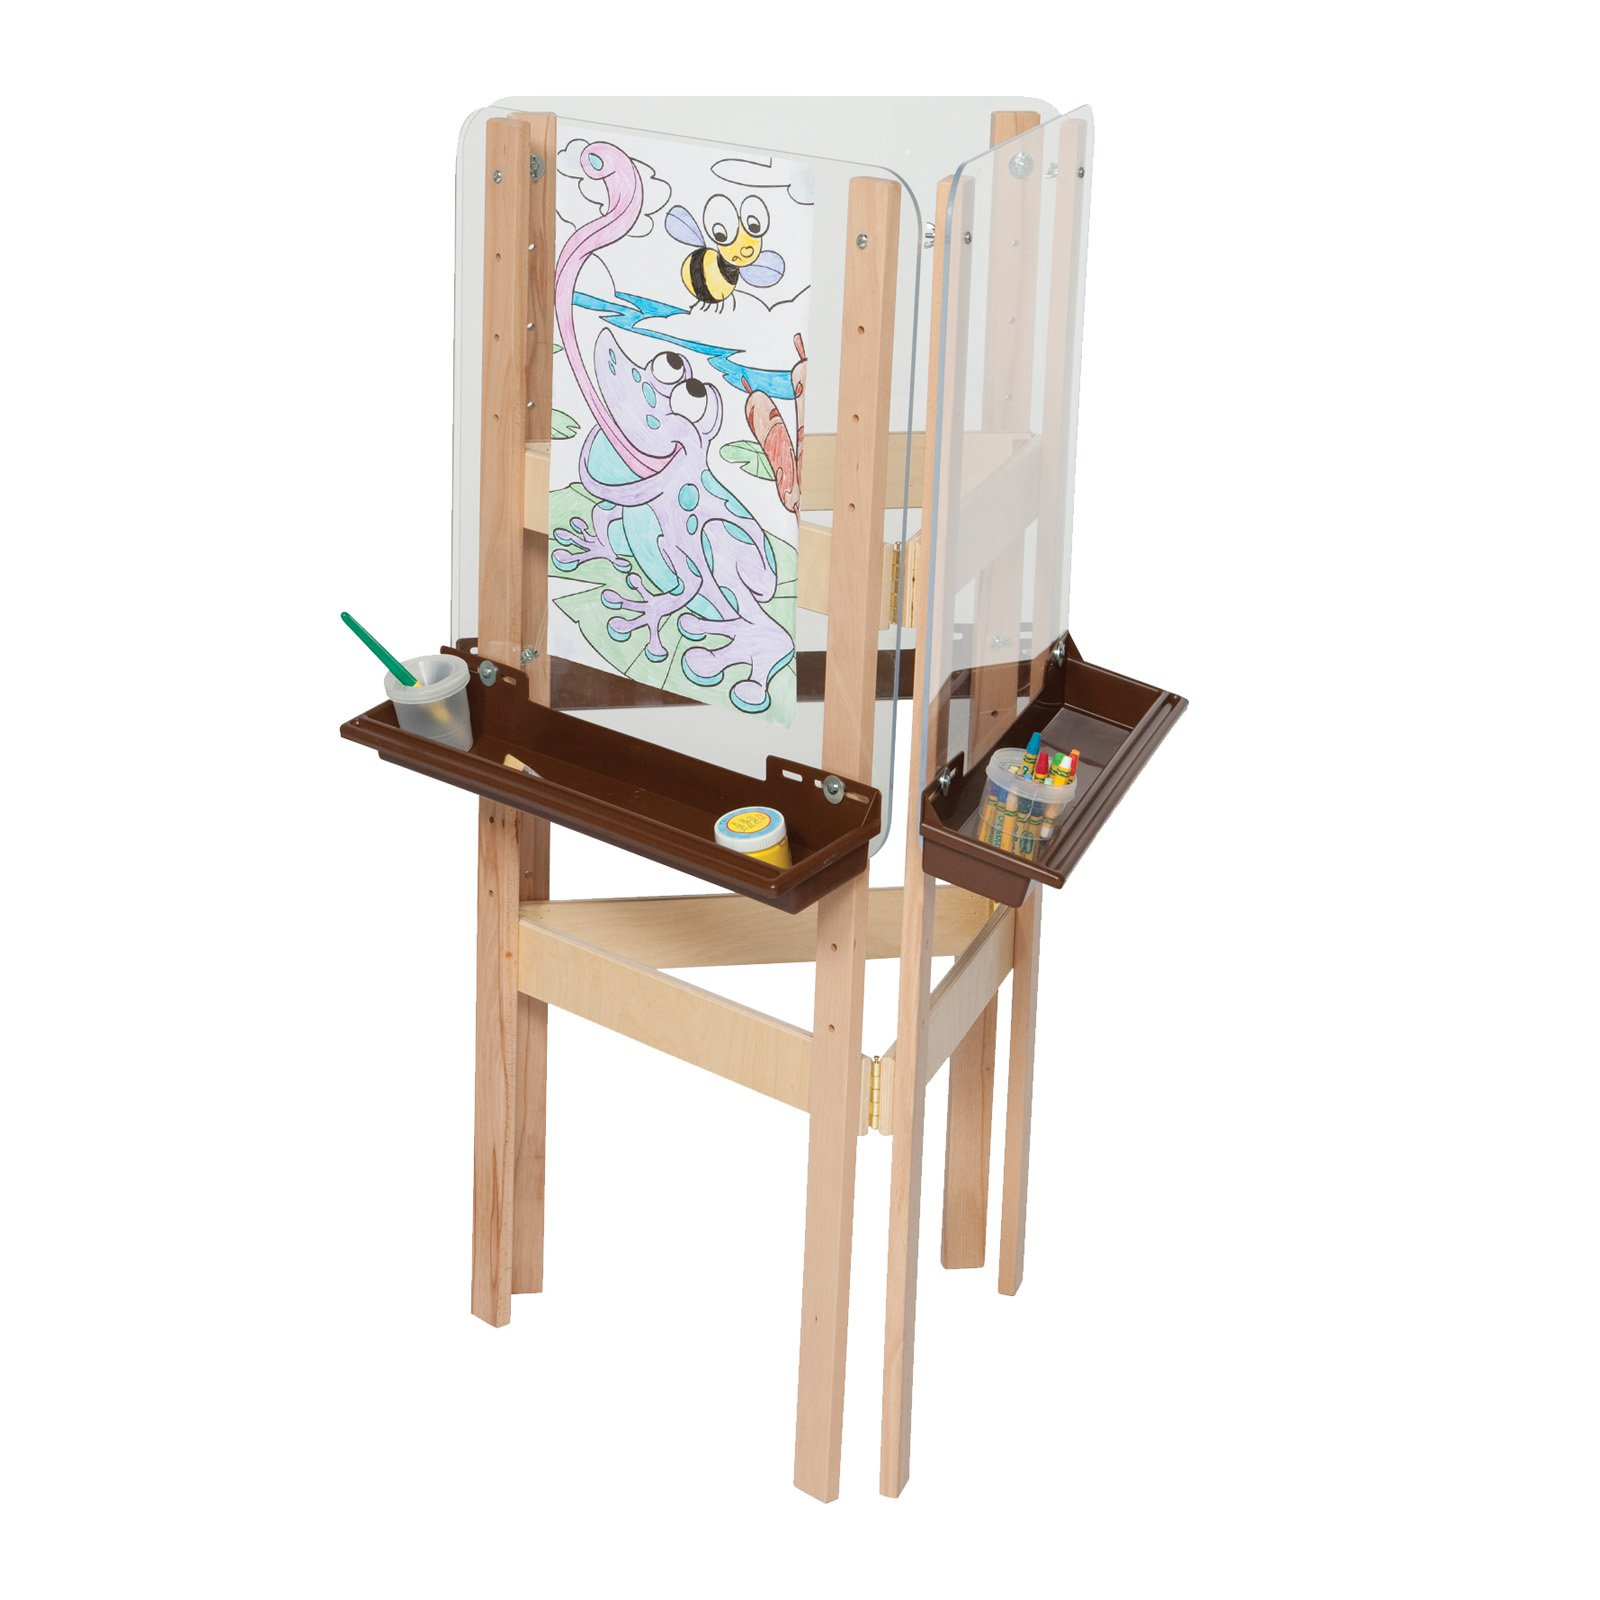 Wood Designs 3 Way Easel with Acrylic and Brown Trays